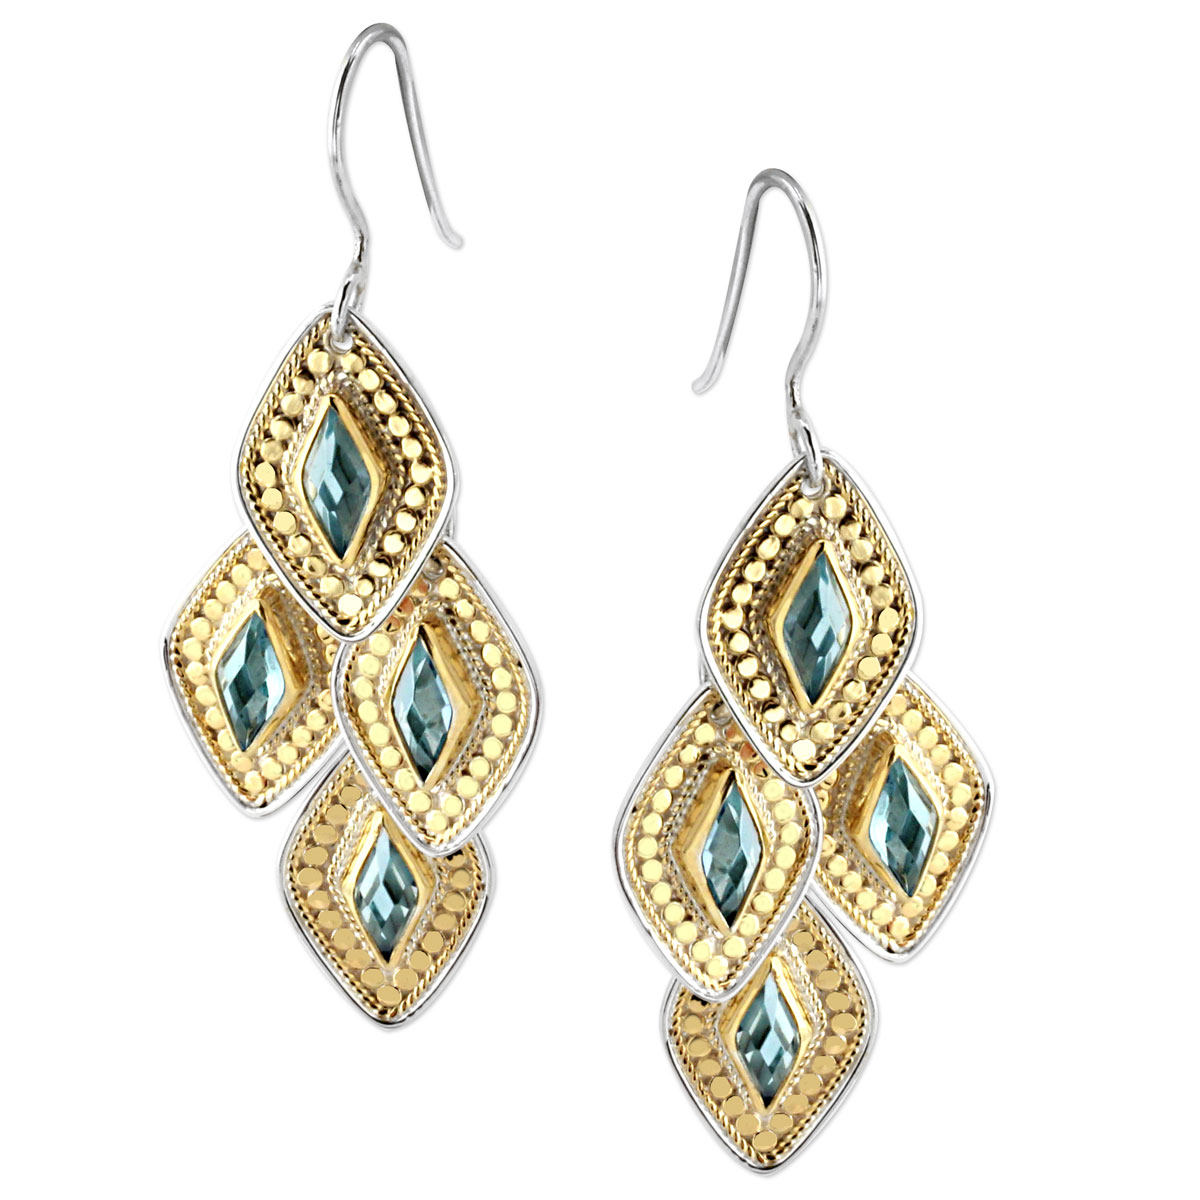 345298-Anna Beck Wire Rimmed Blue Quartz Chandelier Earrings